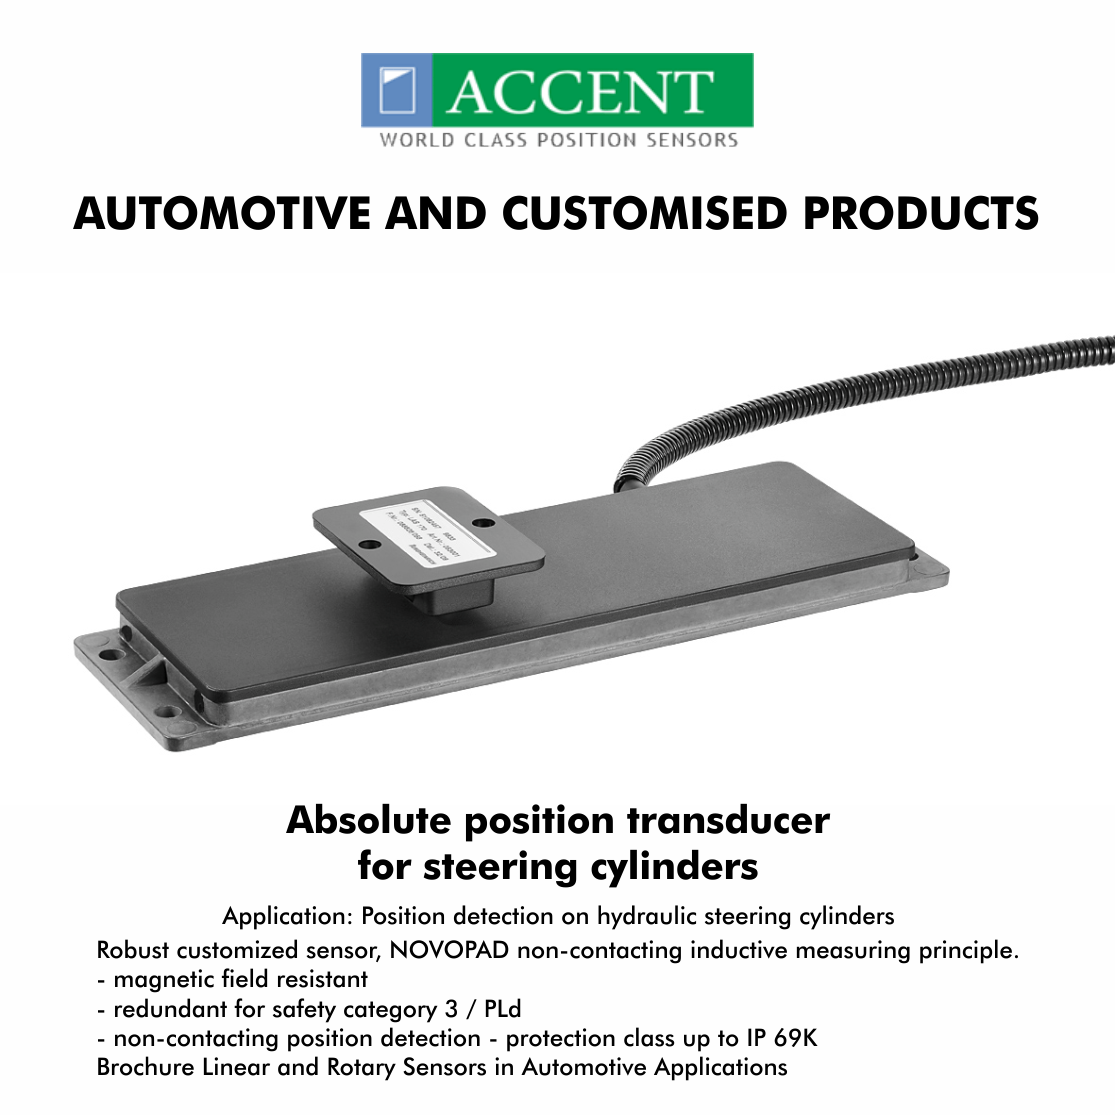 Absolute Position Transducer For Steering Cylinders Application Position Detection On Hydraulic Steering Cylinders Robust Hydraulic Steering Transducer Sensor